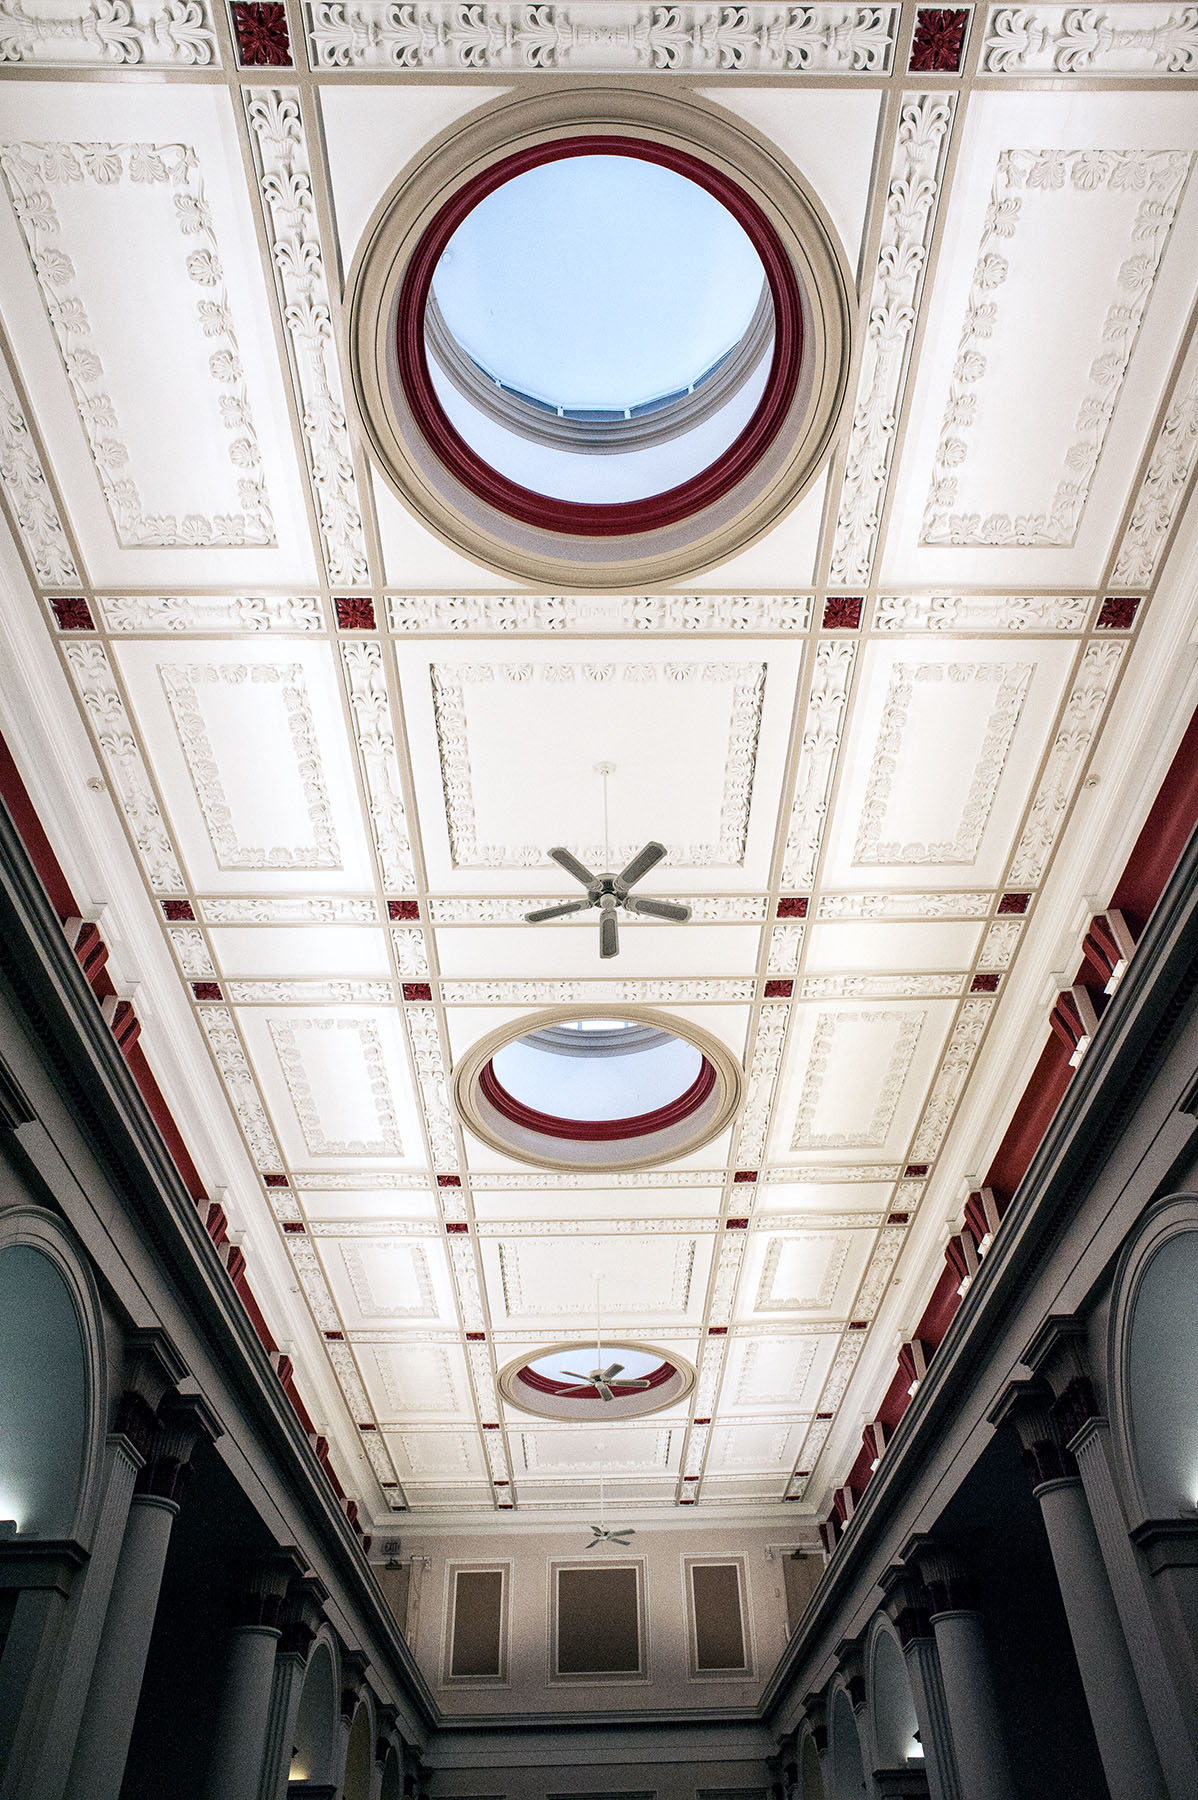 BULFINCH READING ROOM ORNAMENTAL CEILING C.1840.jpg